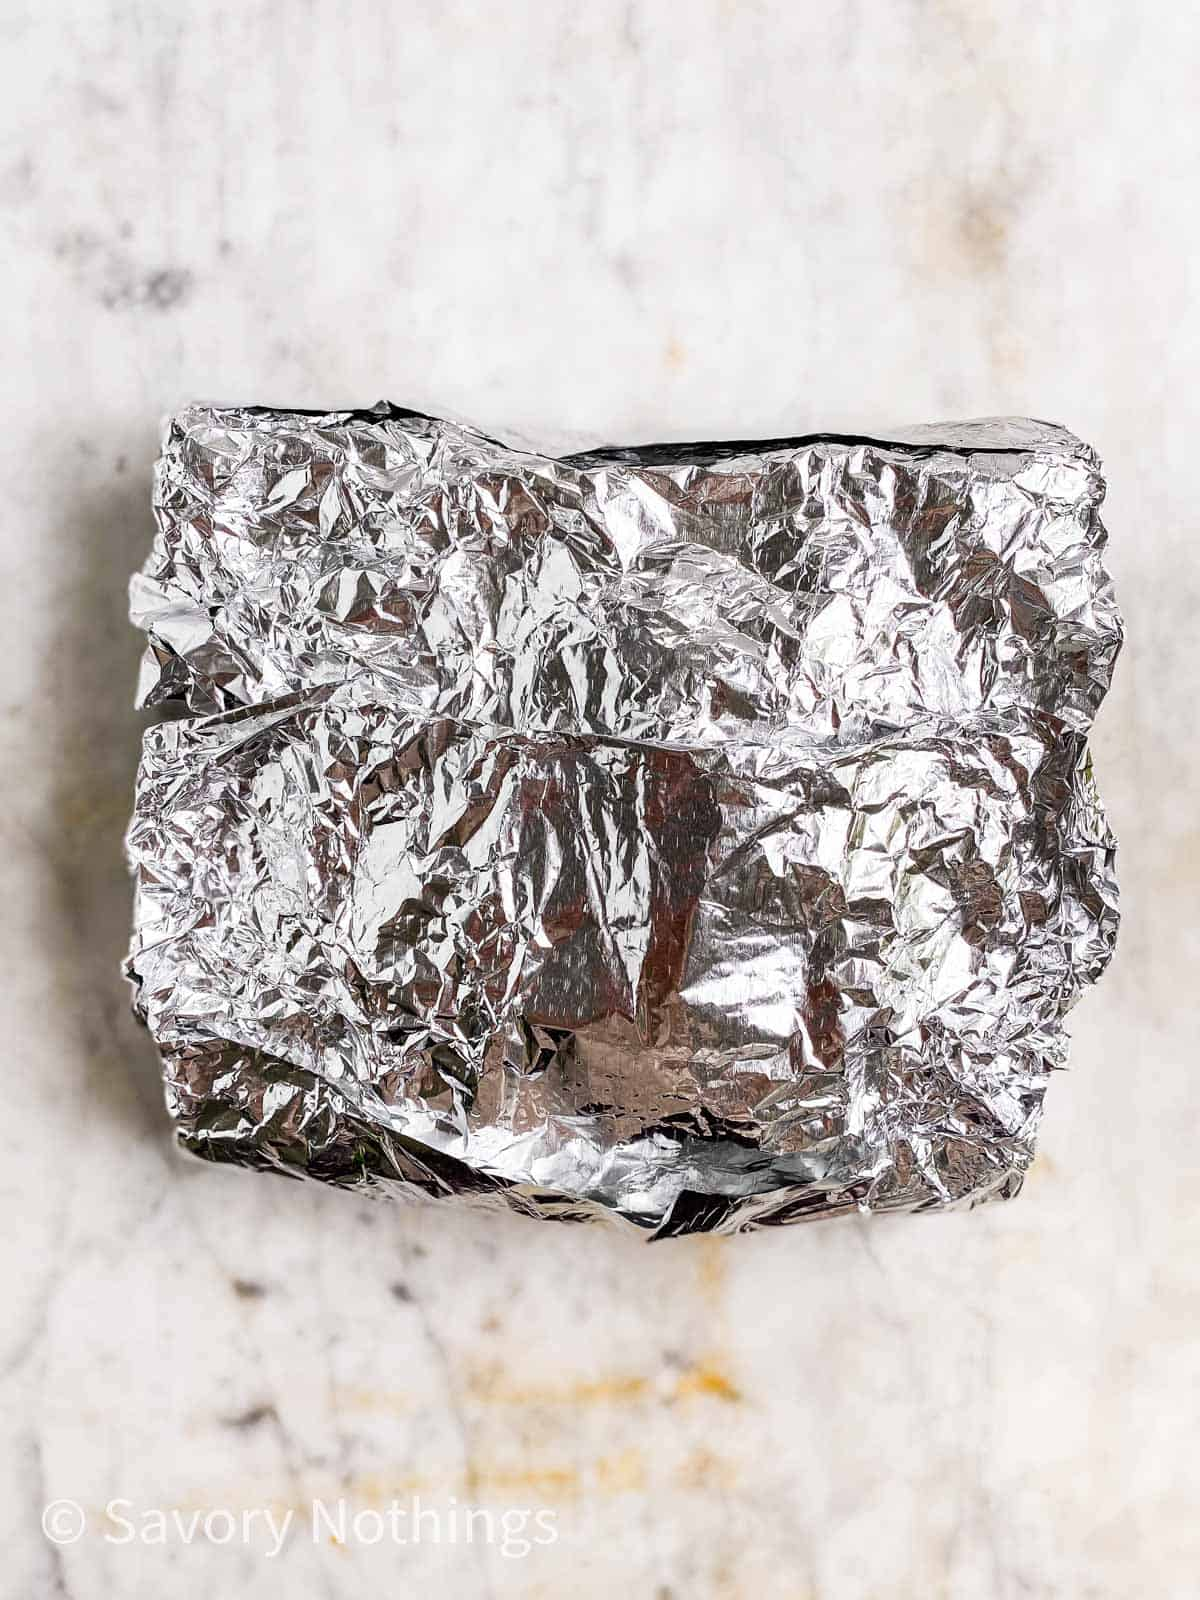 sealed foil pouch on marble surface